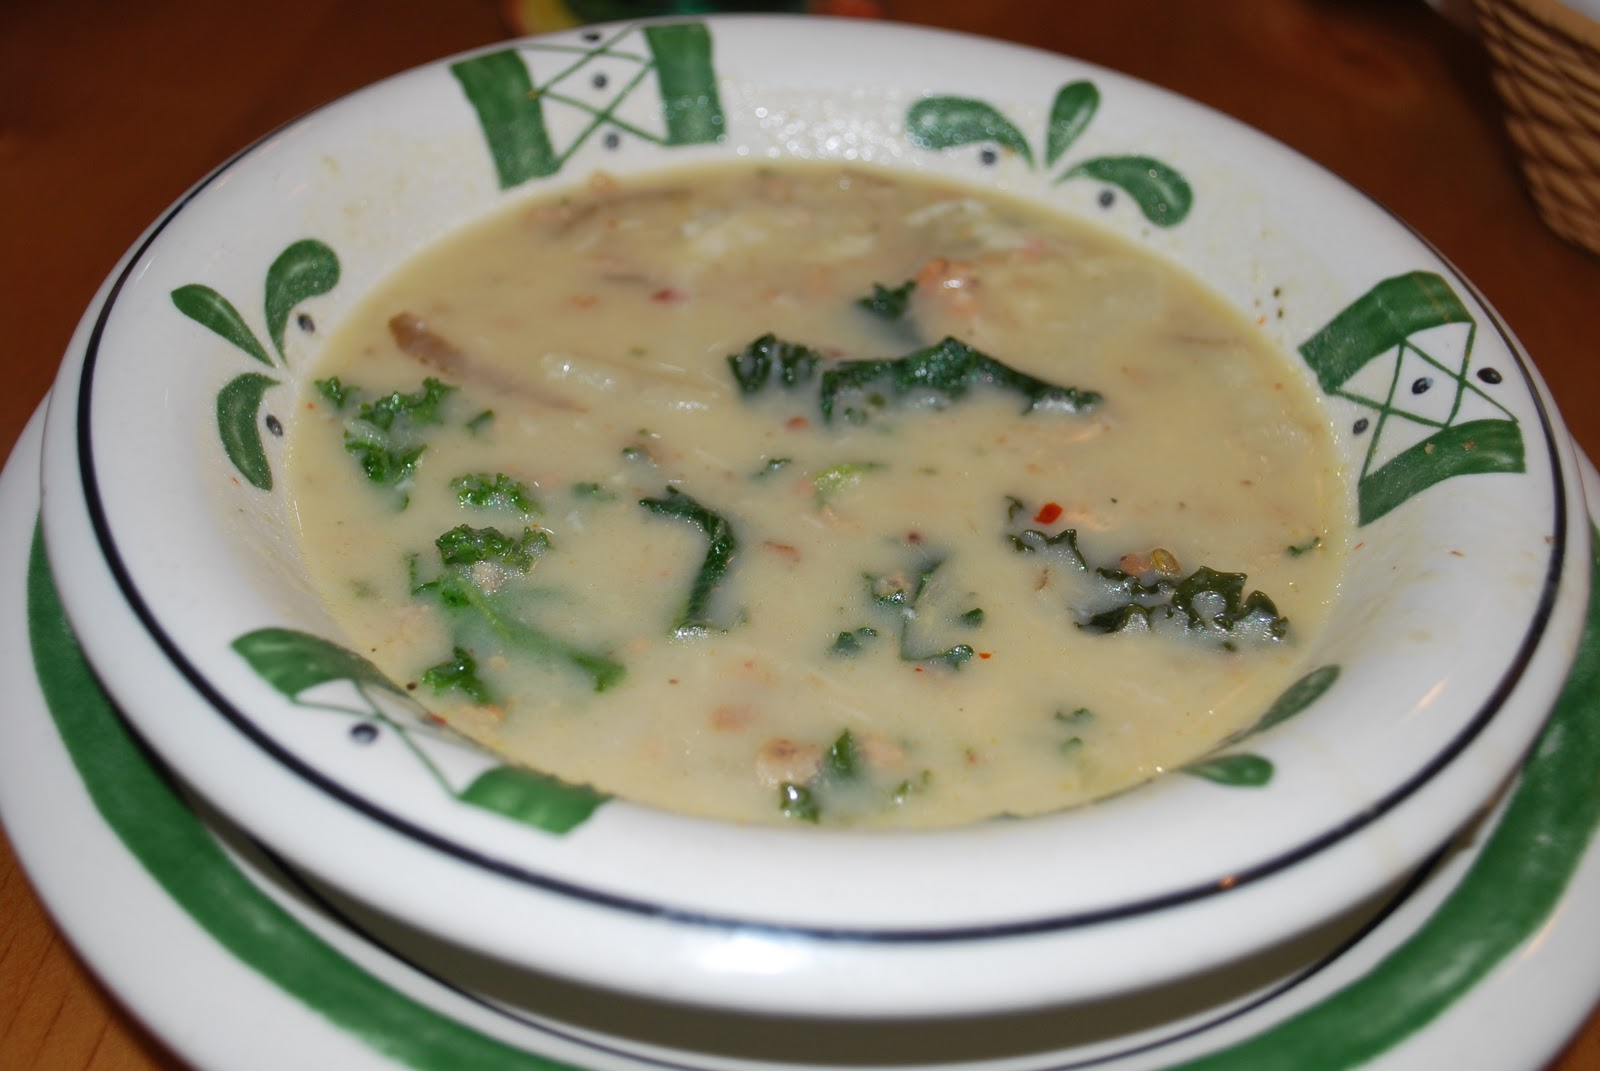 chicago foodie sisters - Olive Garden Soups